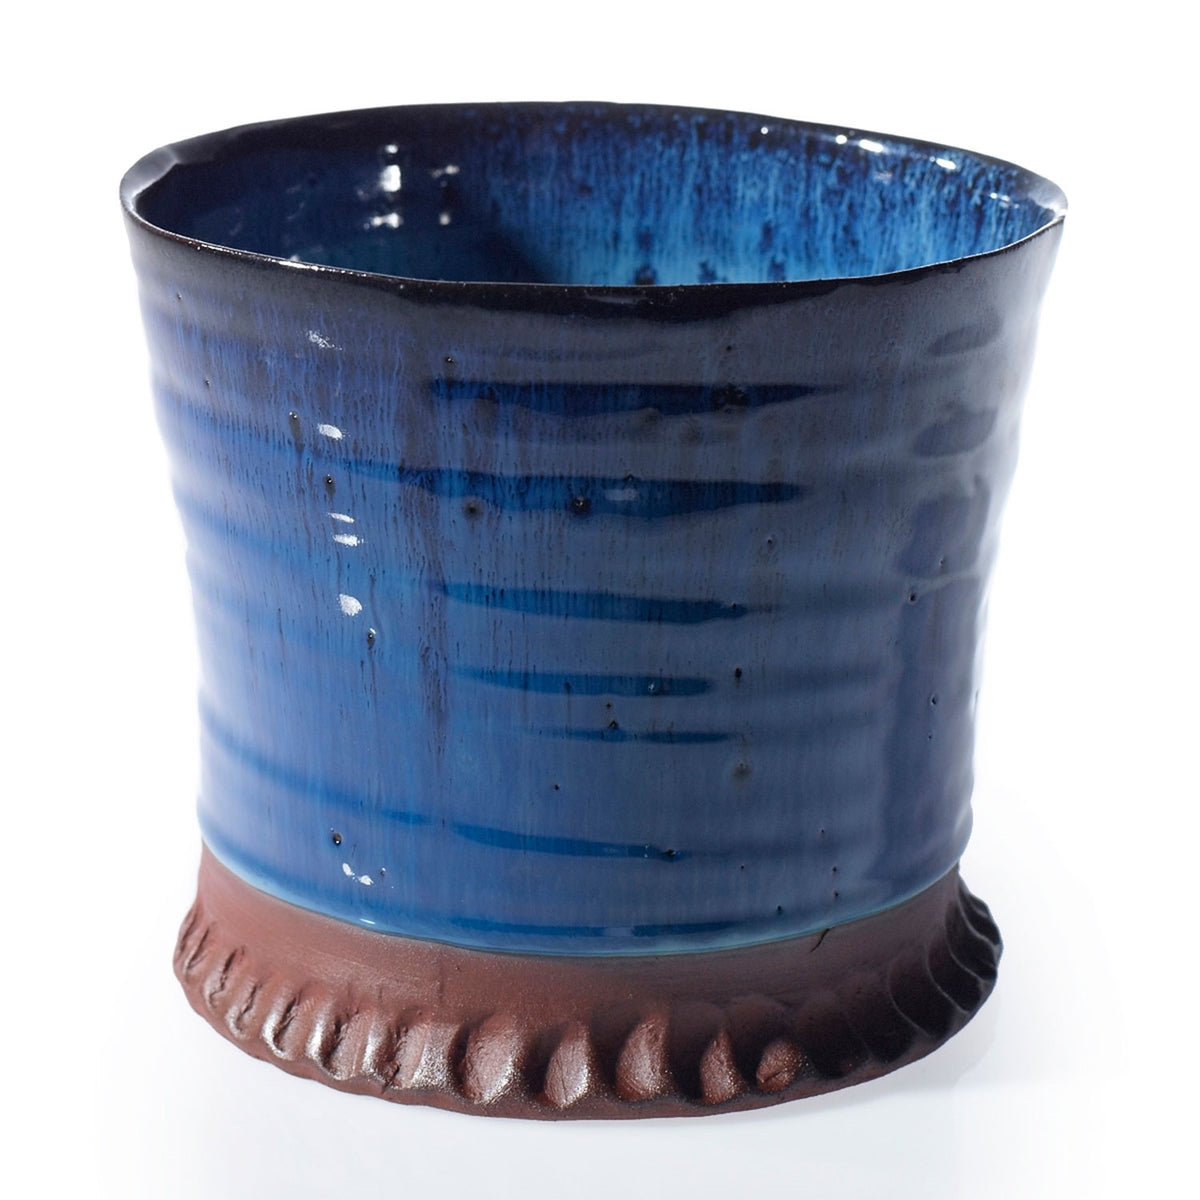 Indigo Ceramic Pot - 6.5 x 5.75